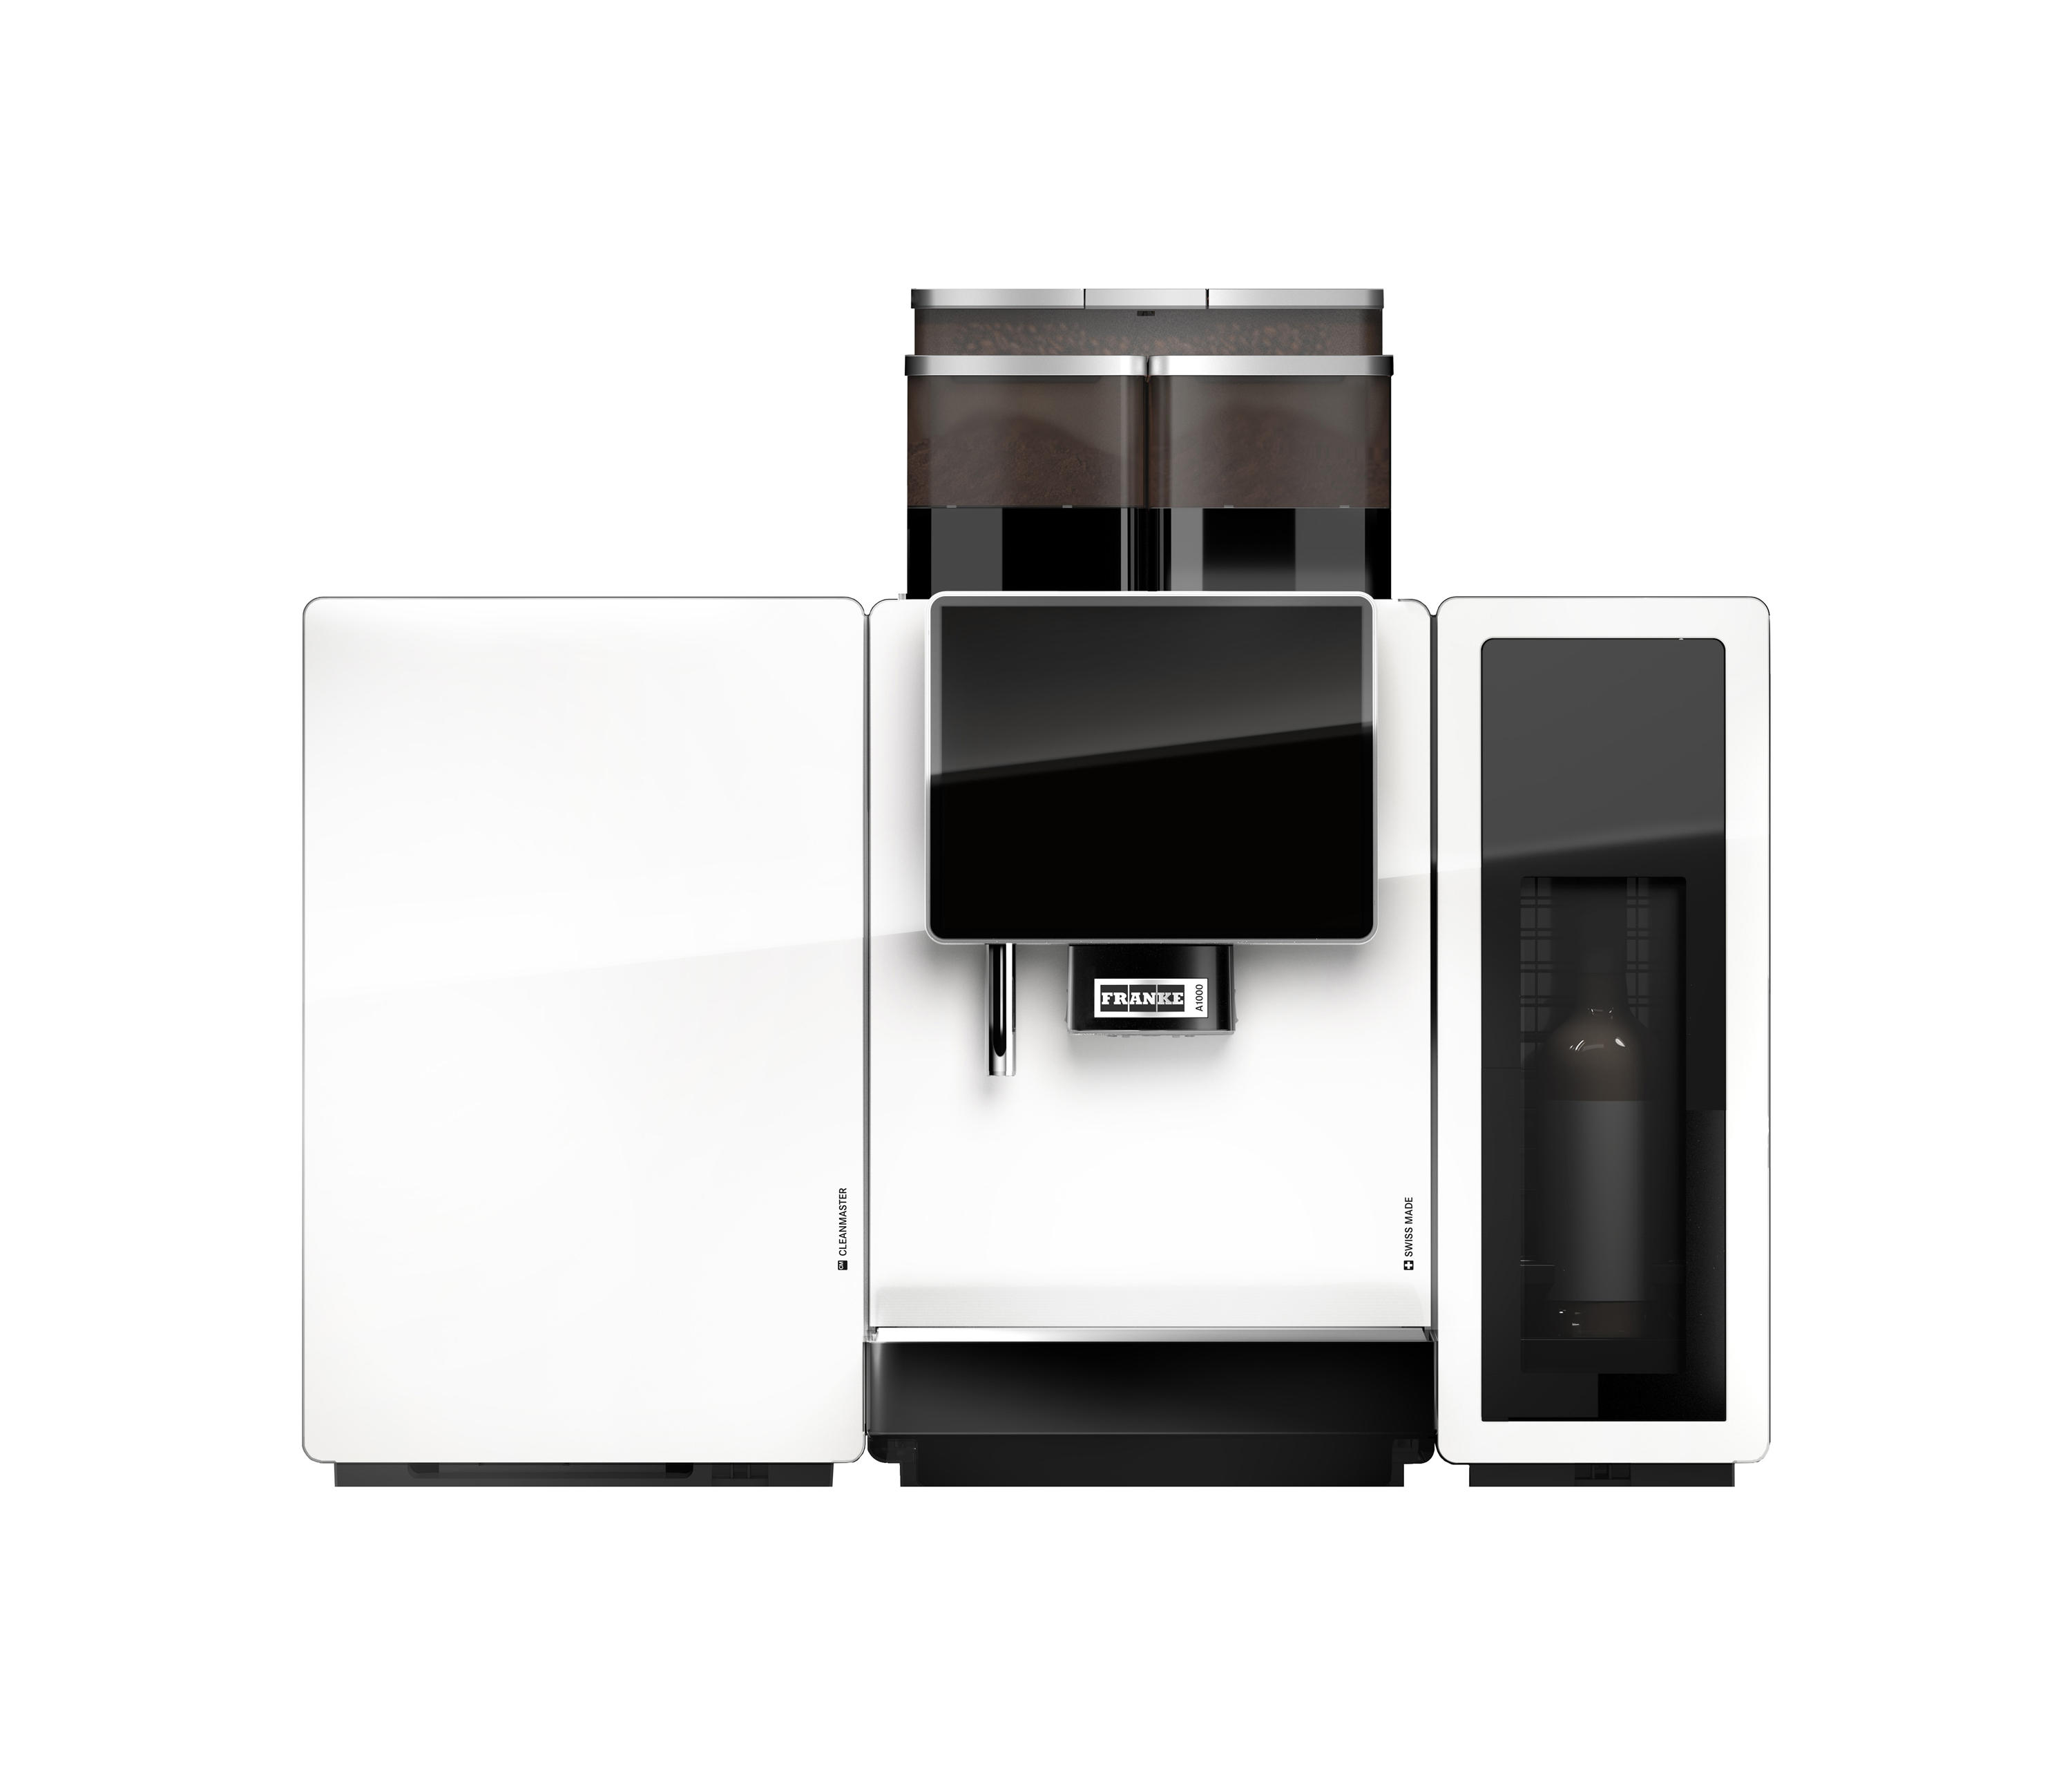 a1000 coffee machines from franke kaffeemaschinen ag architonic. Black Bedroom Furniture Sets. Home Design Ideas